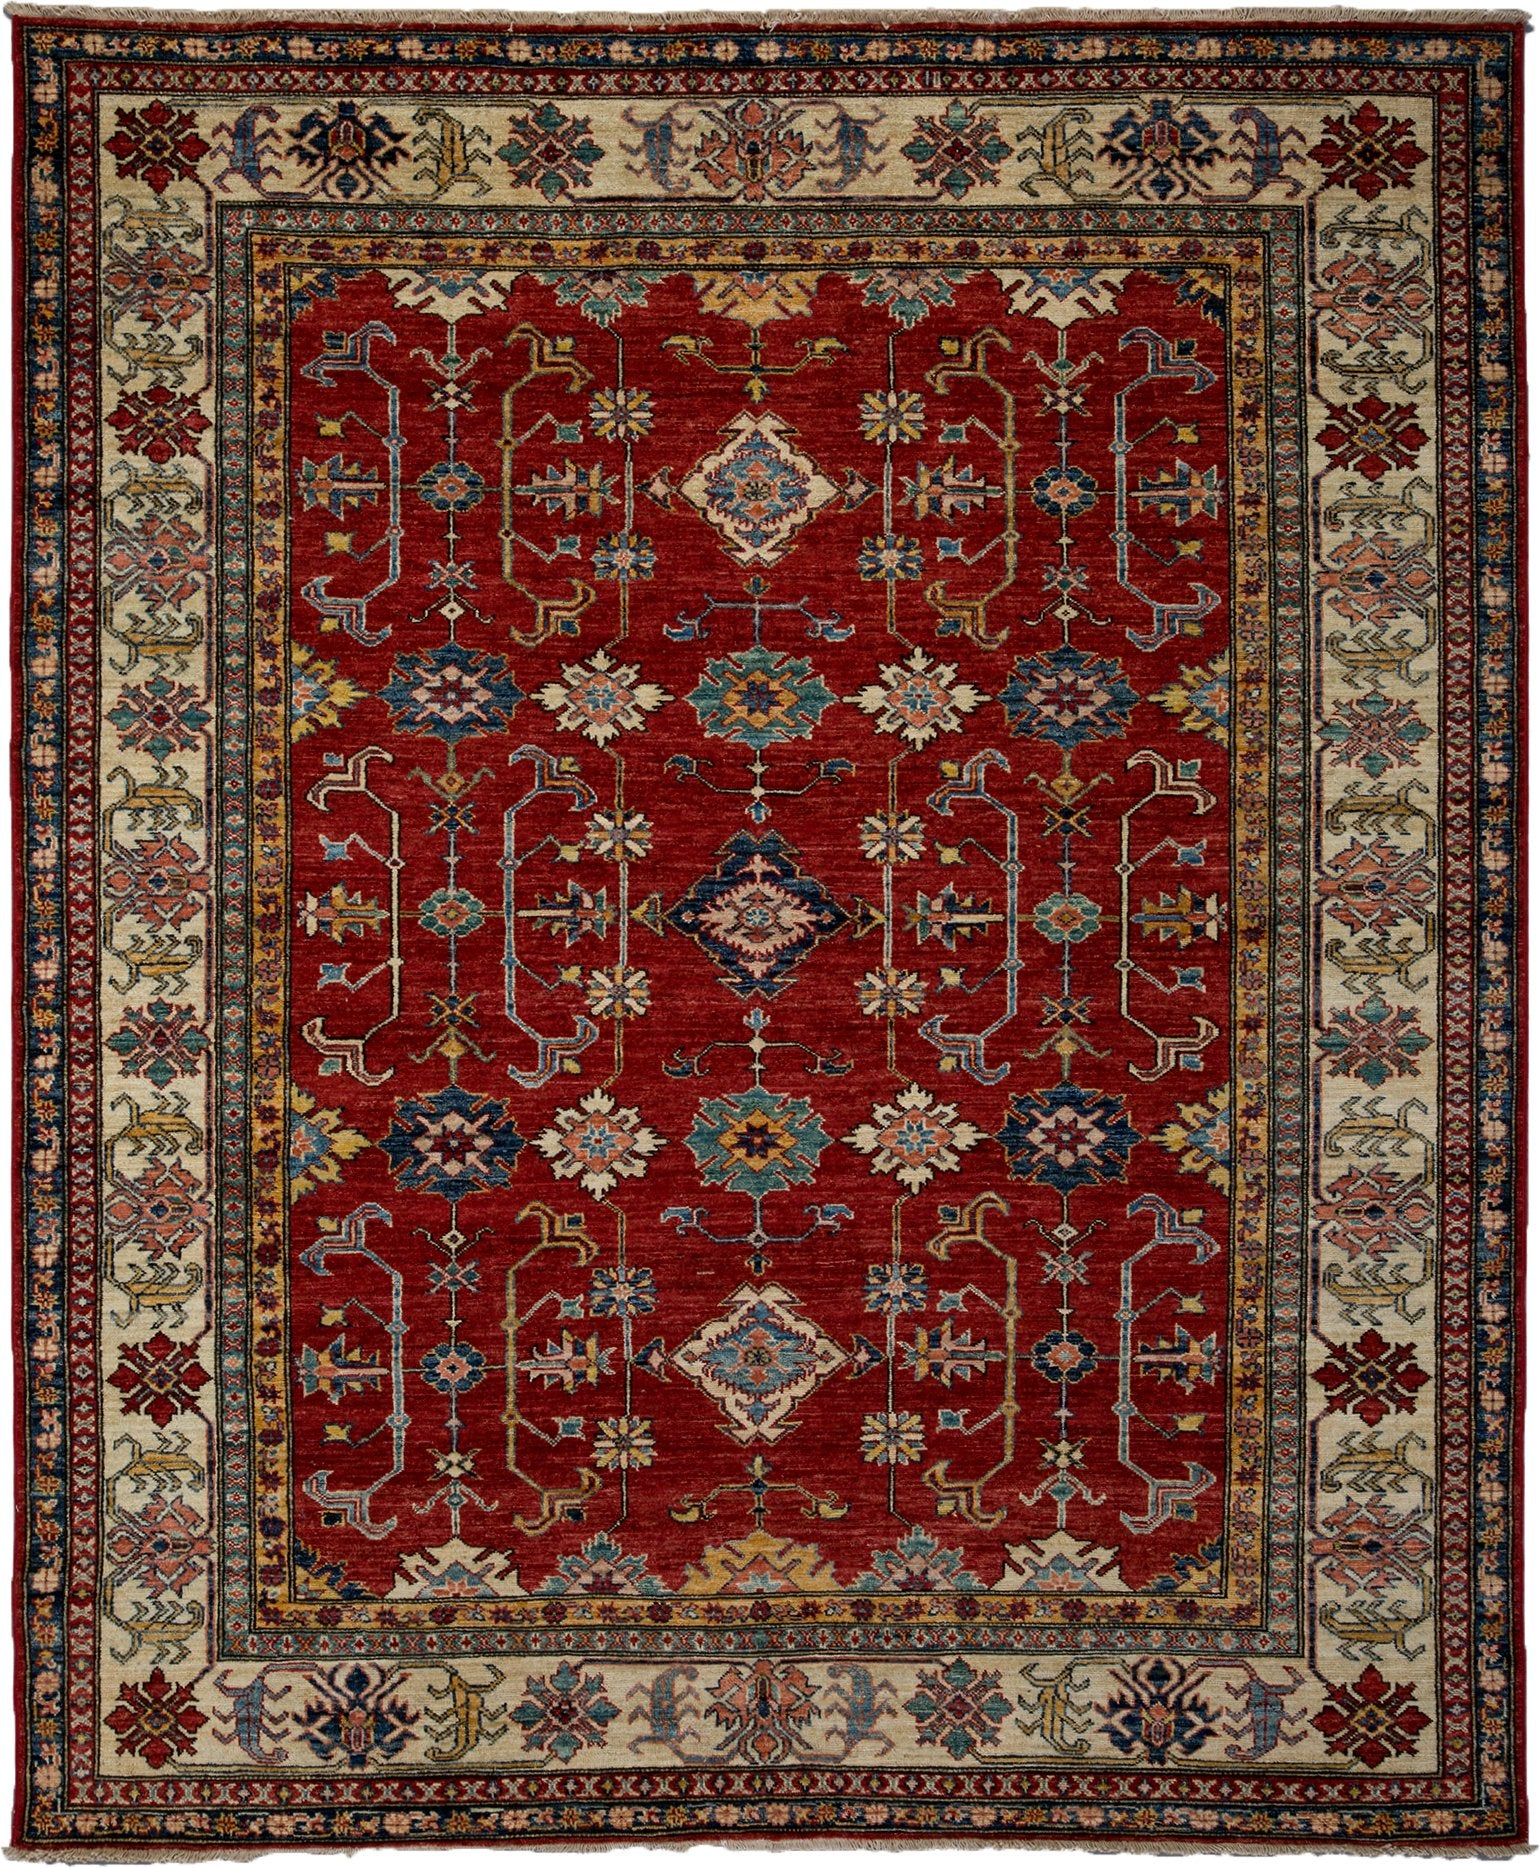 Classic Red Wool Area Rug 6 7 X 8 0 Lillian August